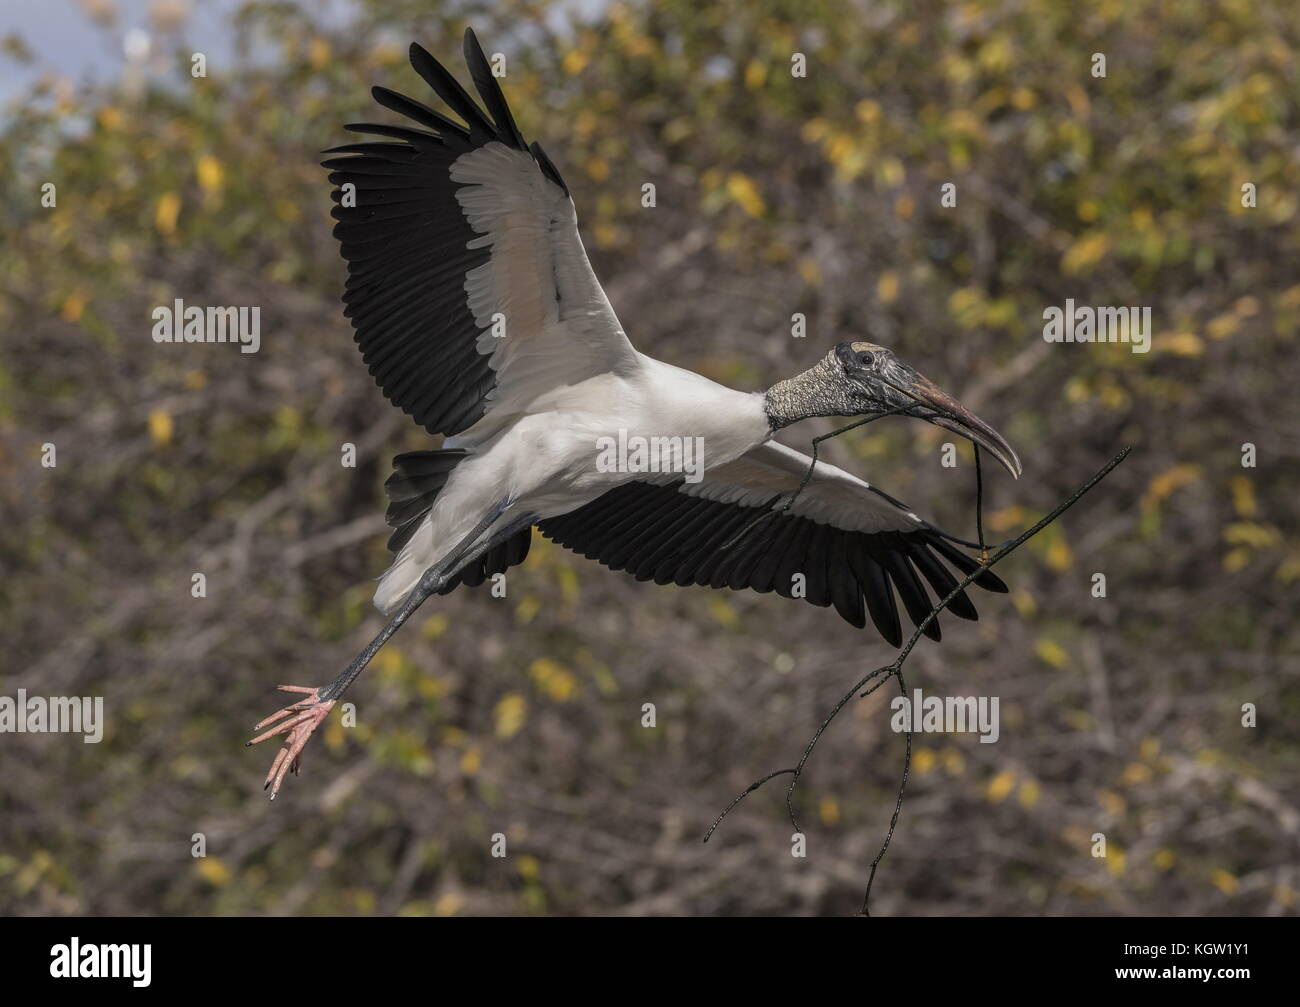 Wood stork, Mycteria americana, in flight carrying nesting material in nesting colony, South Florida. - Stock Image